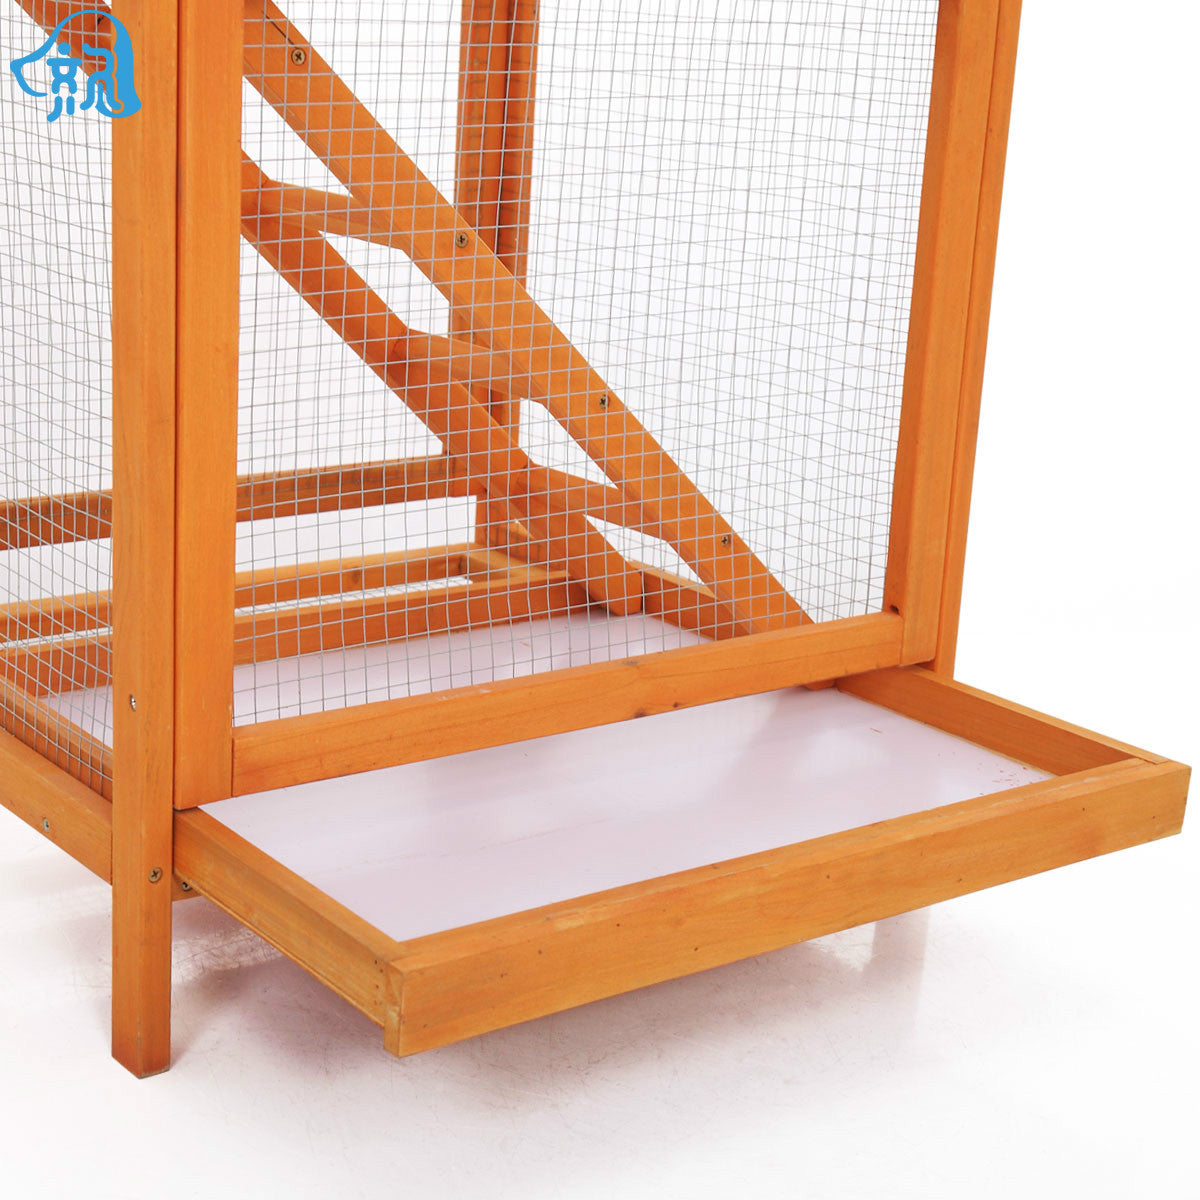 Qi Jiu bird cage bird cage squirrel cage outside solid wood bird house pigeon cage squirrel cage golden flower squirrel cage cage